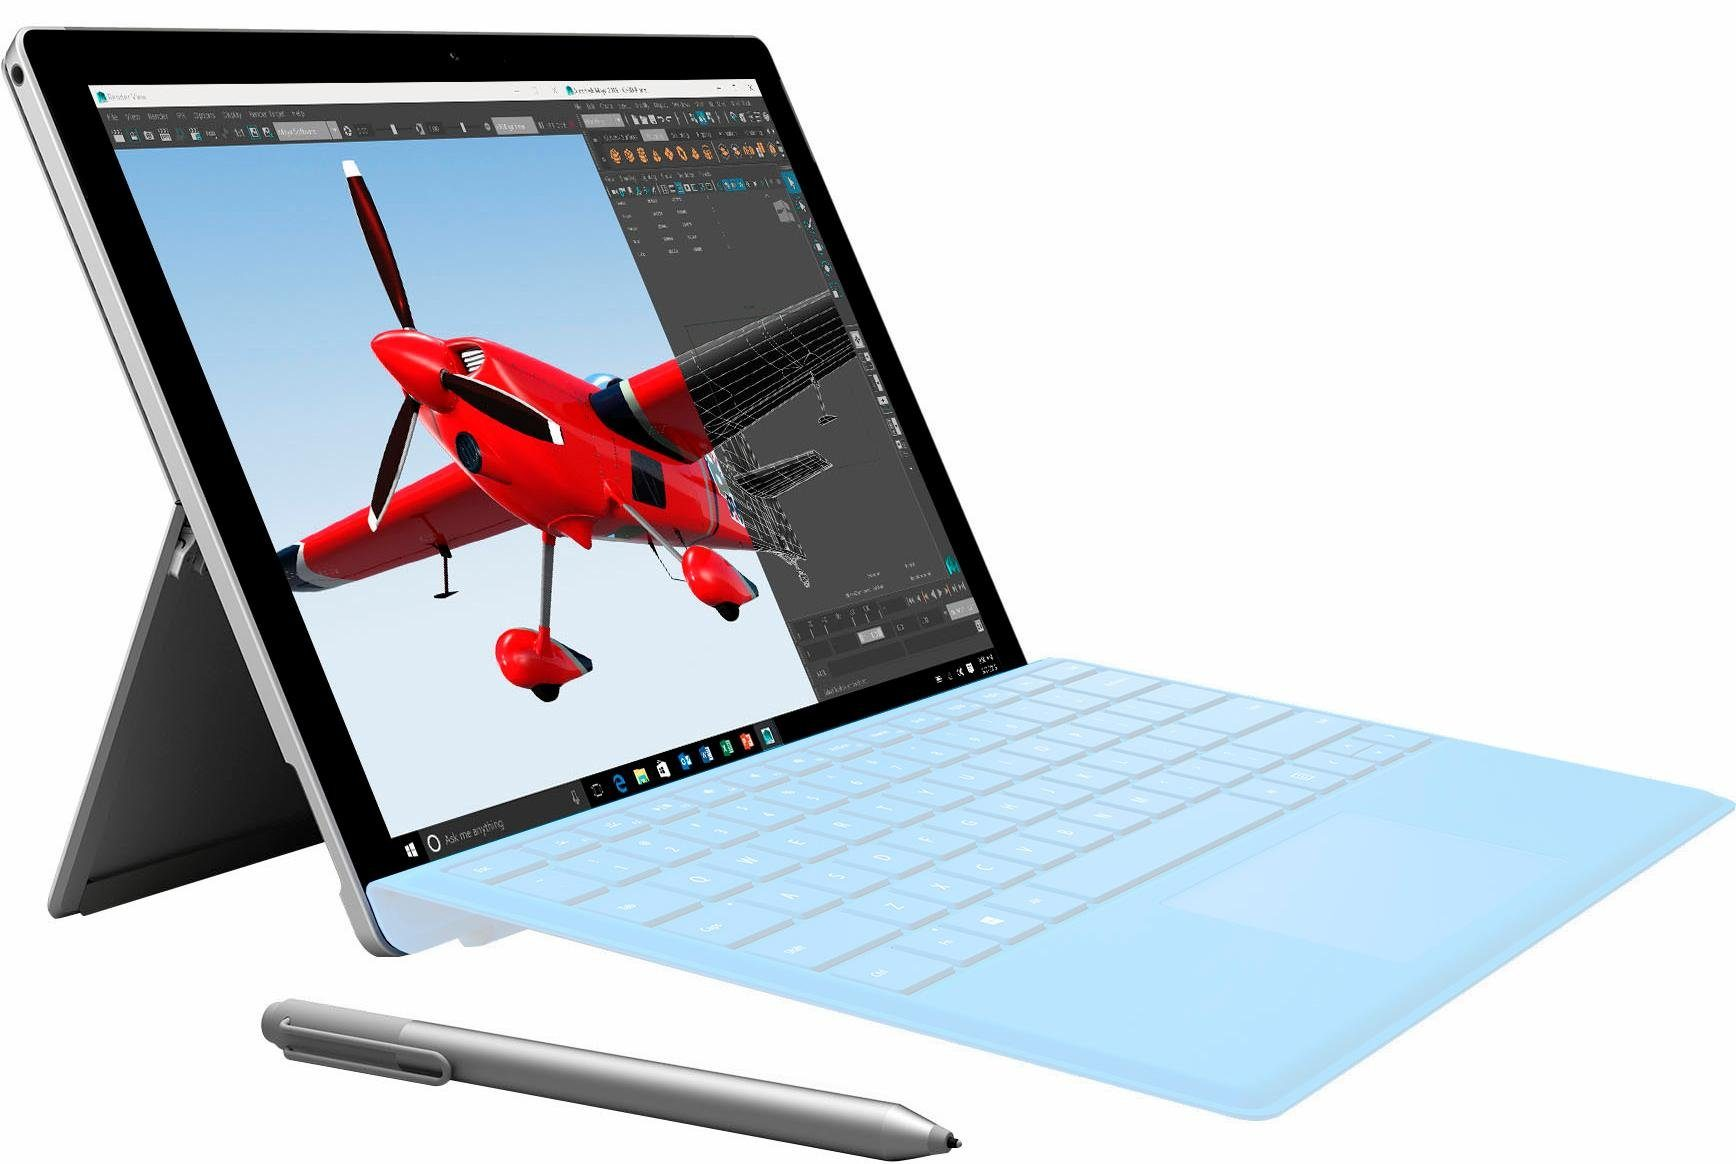 Microsoft Surface Pro 4 TH2-00003 Tablet-PC, Microsoft® Windows® 10 Home, Intel Core i7